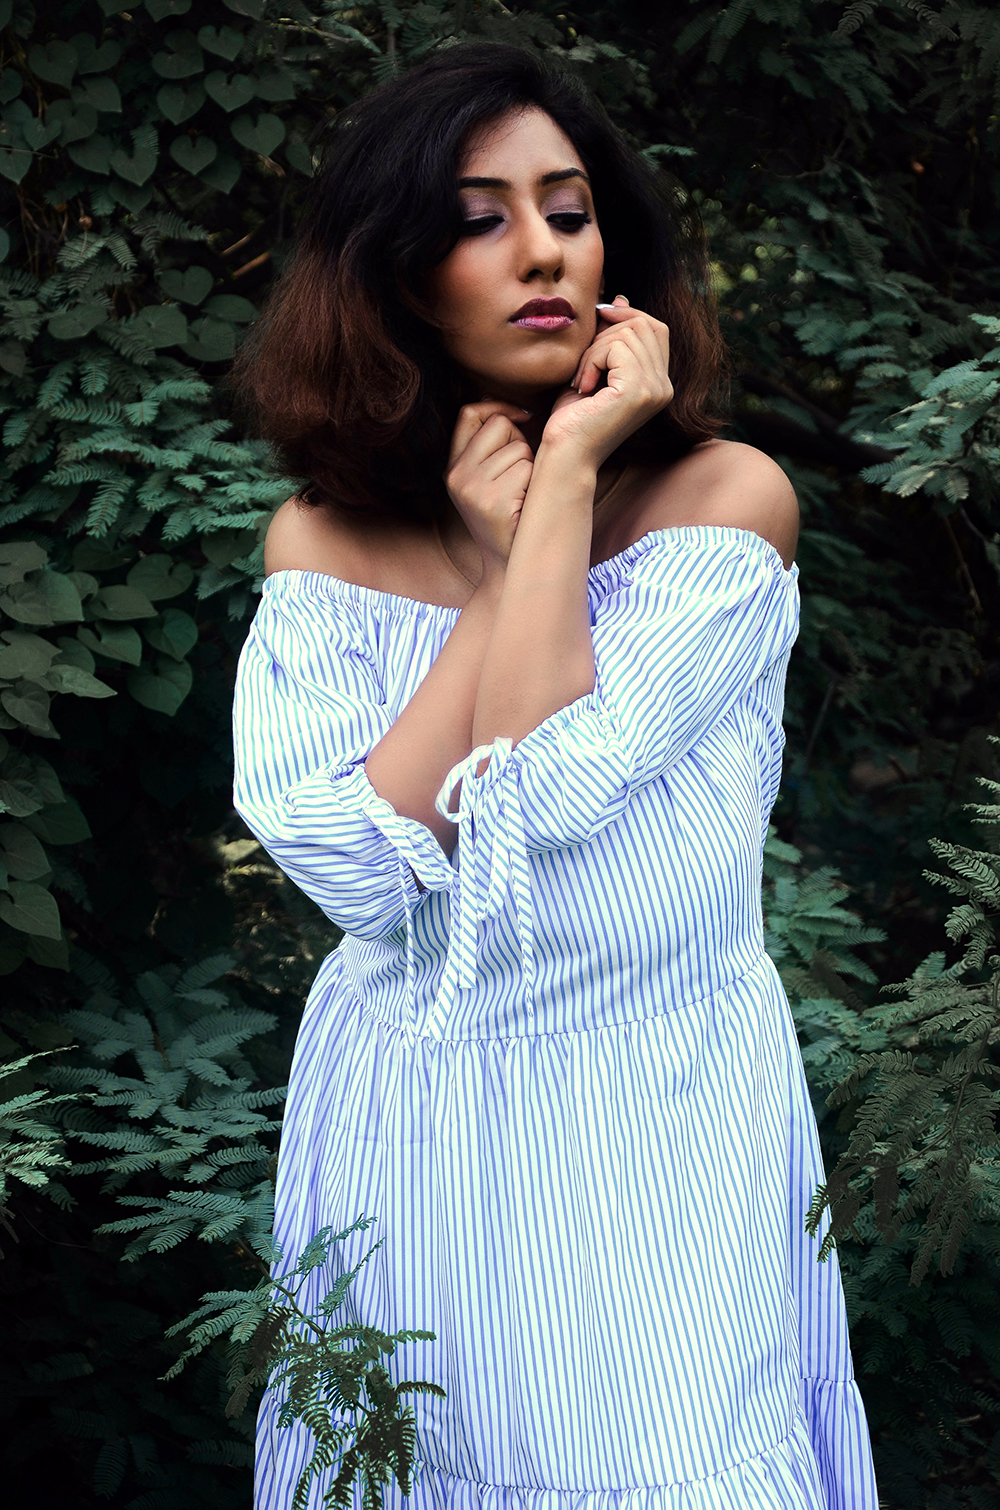 Lookbook ; Gypsy ; Bohemian ; Dress ; Striped Maxi ; Cold Shoulder, White and Blue ; Outfit ; fashion photography ; Choker ; Shein ; dusk ; editorial ; strong ; Dark ; summer fashion ; summer outfit ; spring ; summer 17 boho look ; Hyderabad ; Monsoon ; Editorial ; Naznin ; Naznin Suhaer ; dusky; model ; indian blogger ; hyderabad fashion bloggers ; hyderabad bloggers ; hyderabad fashion blogger ; I Dress for the Applause ;